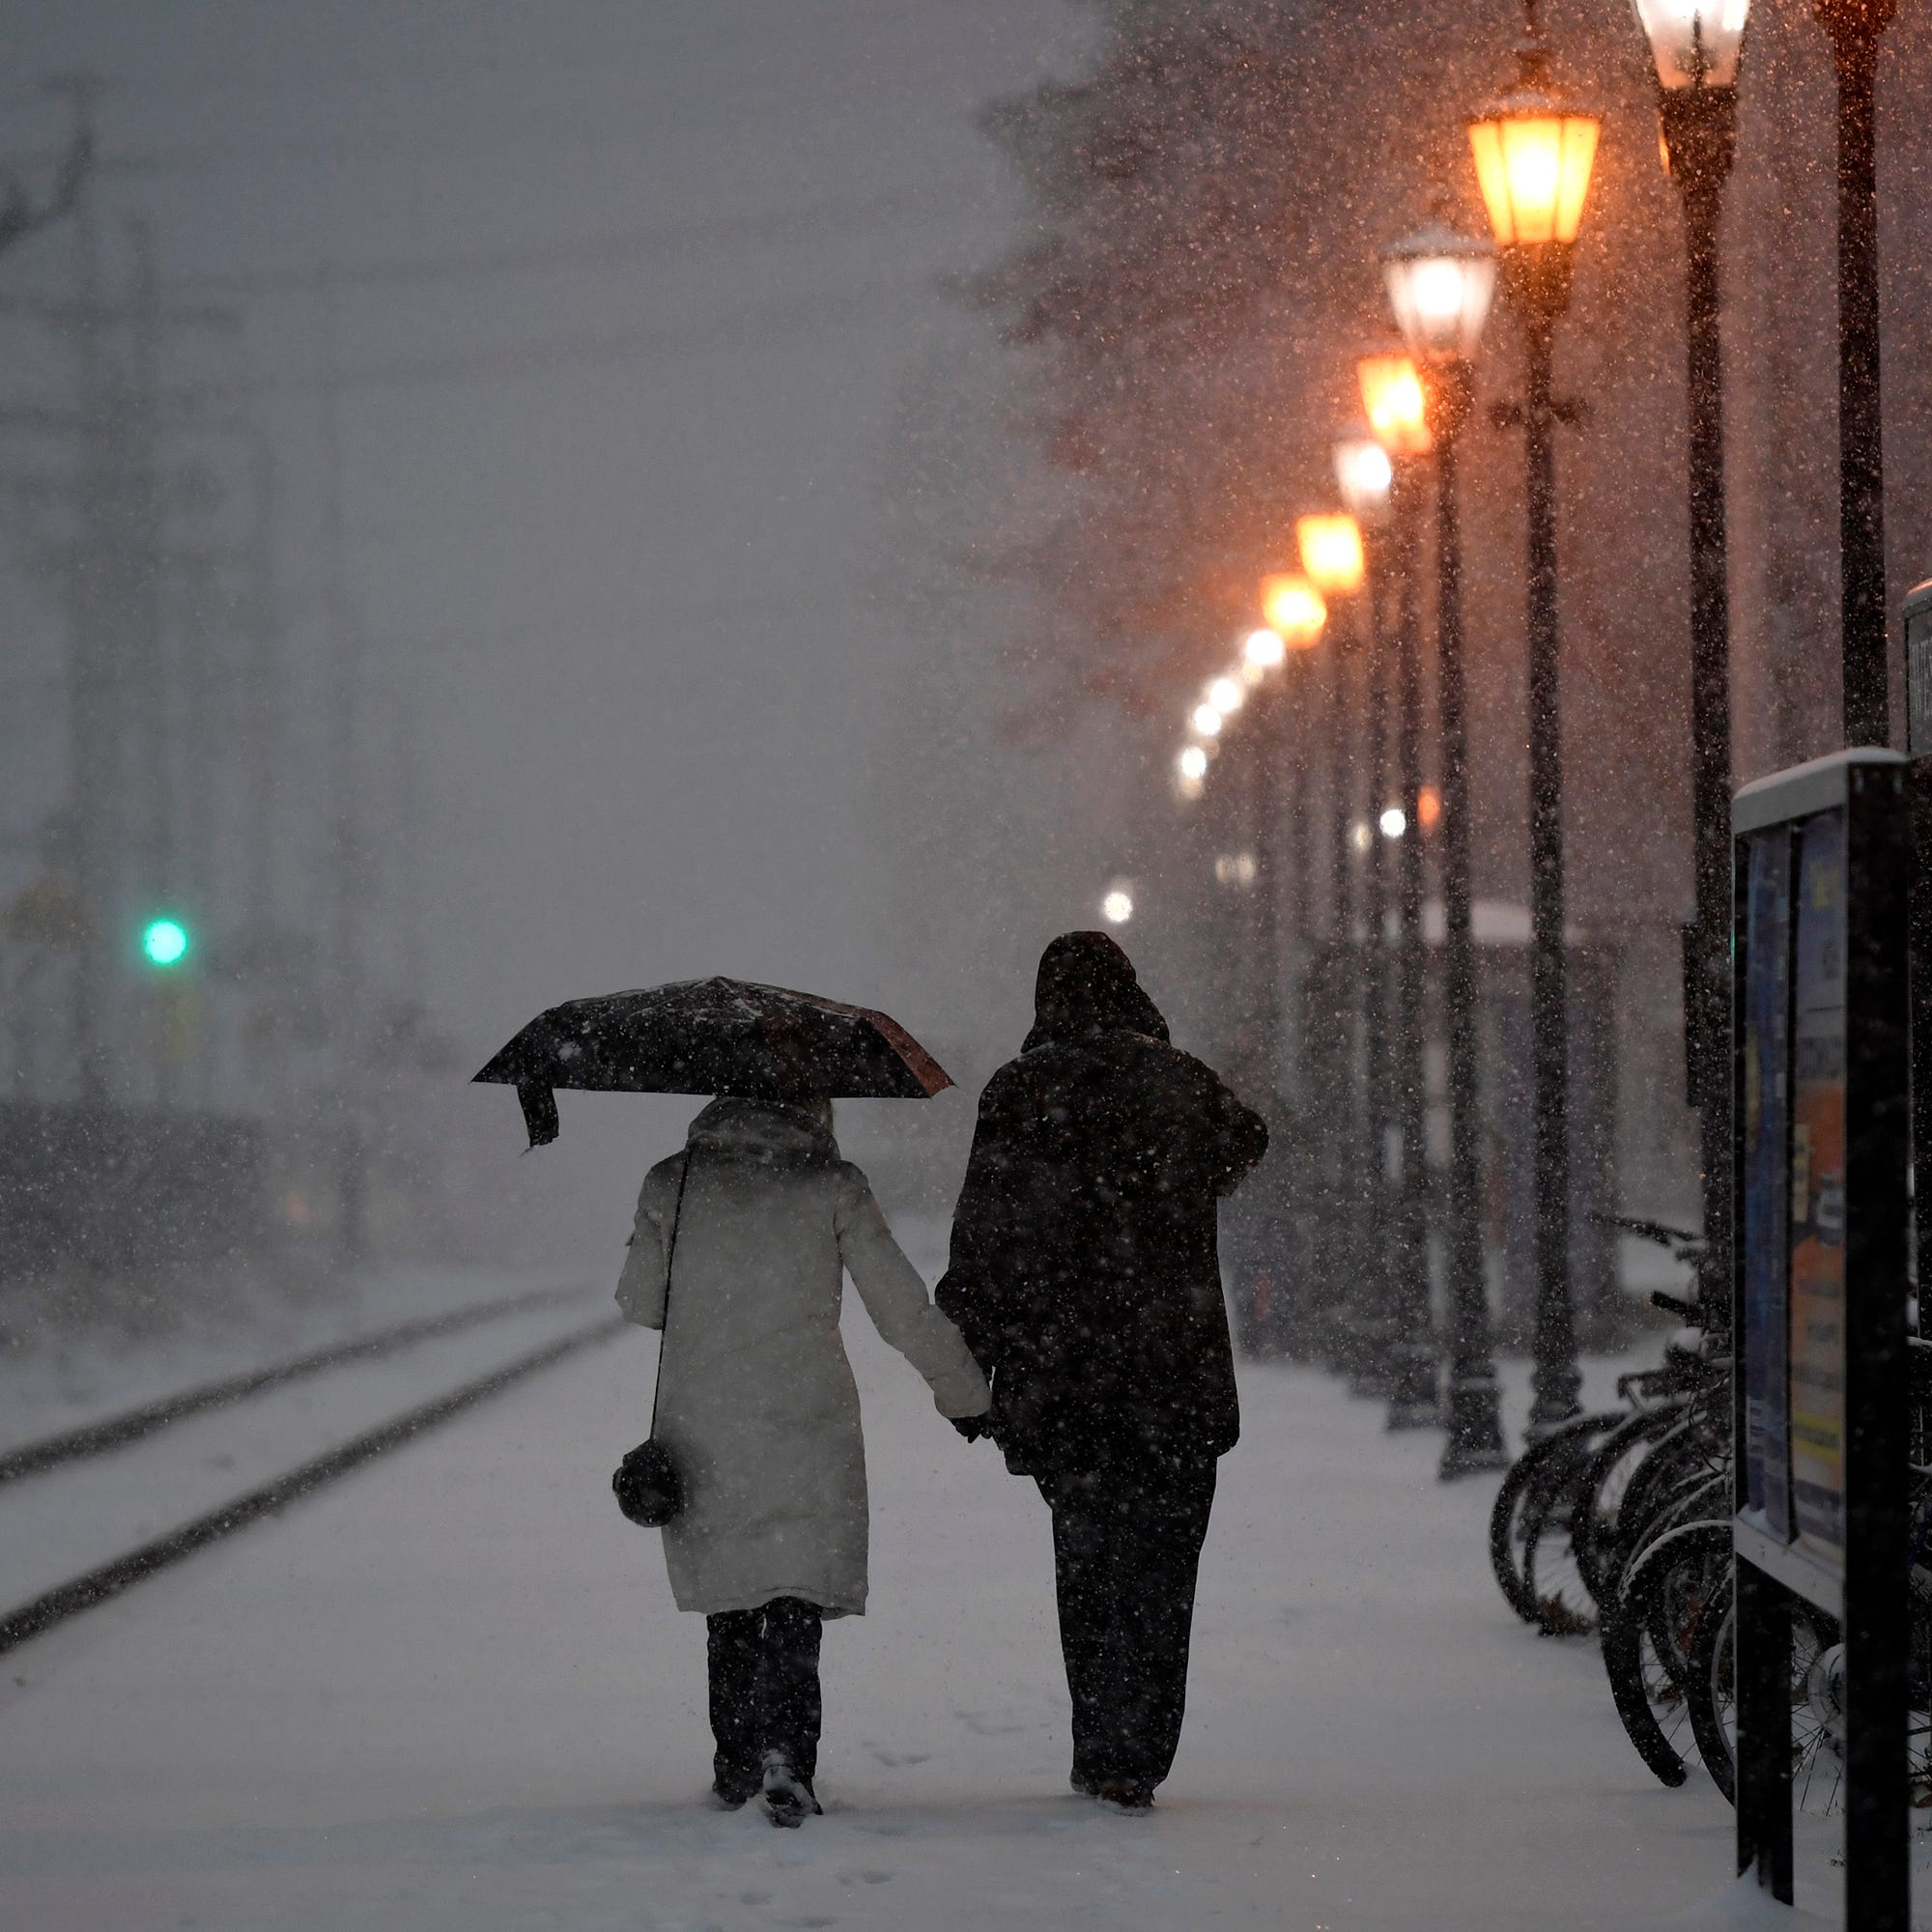 NJ weather: Here's how much snow and rain the nor'easter dumped on NJ